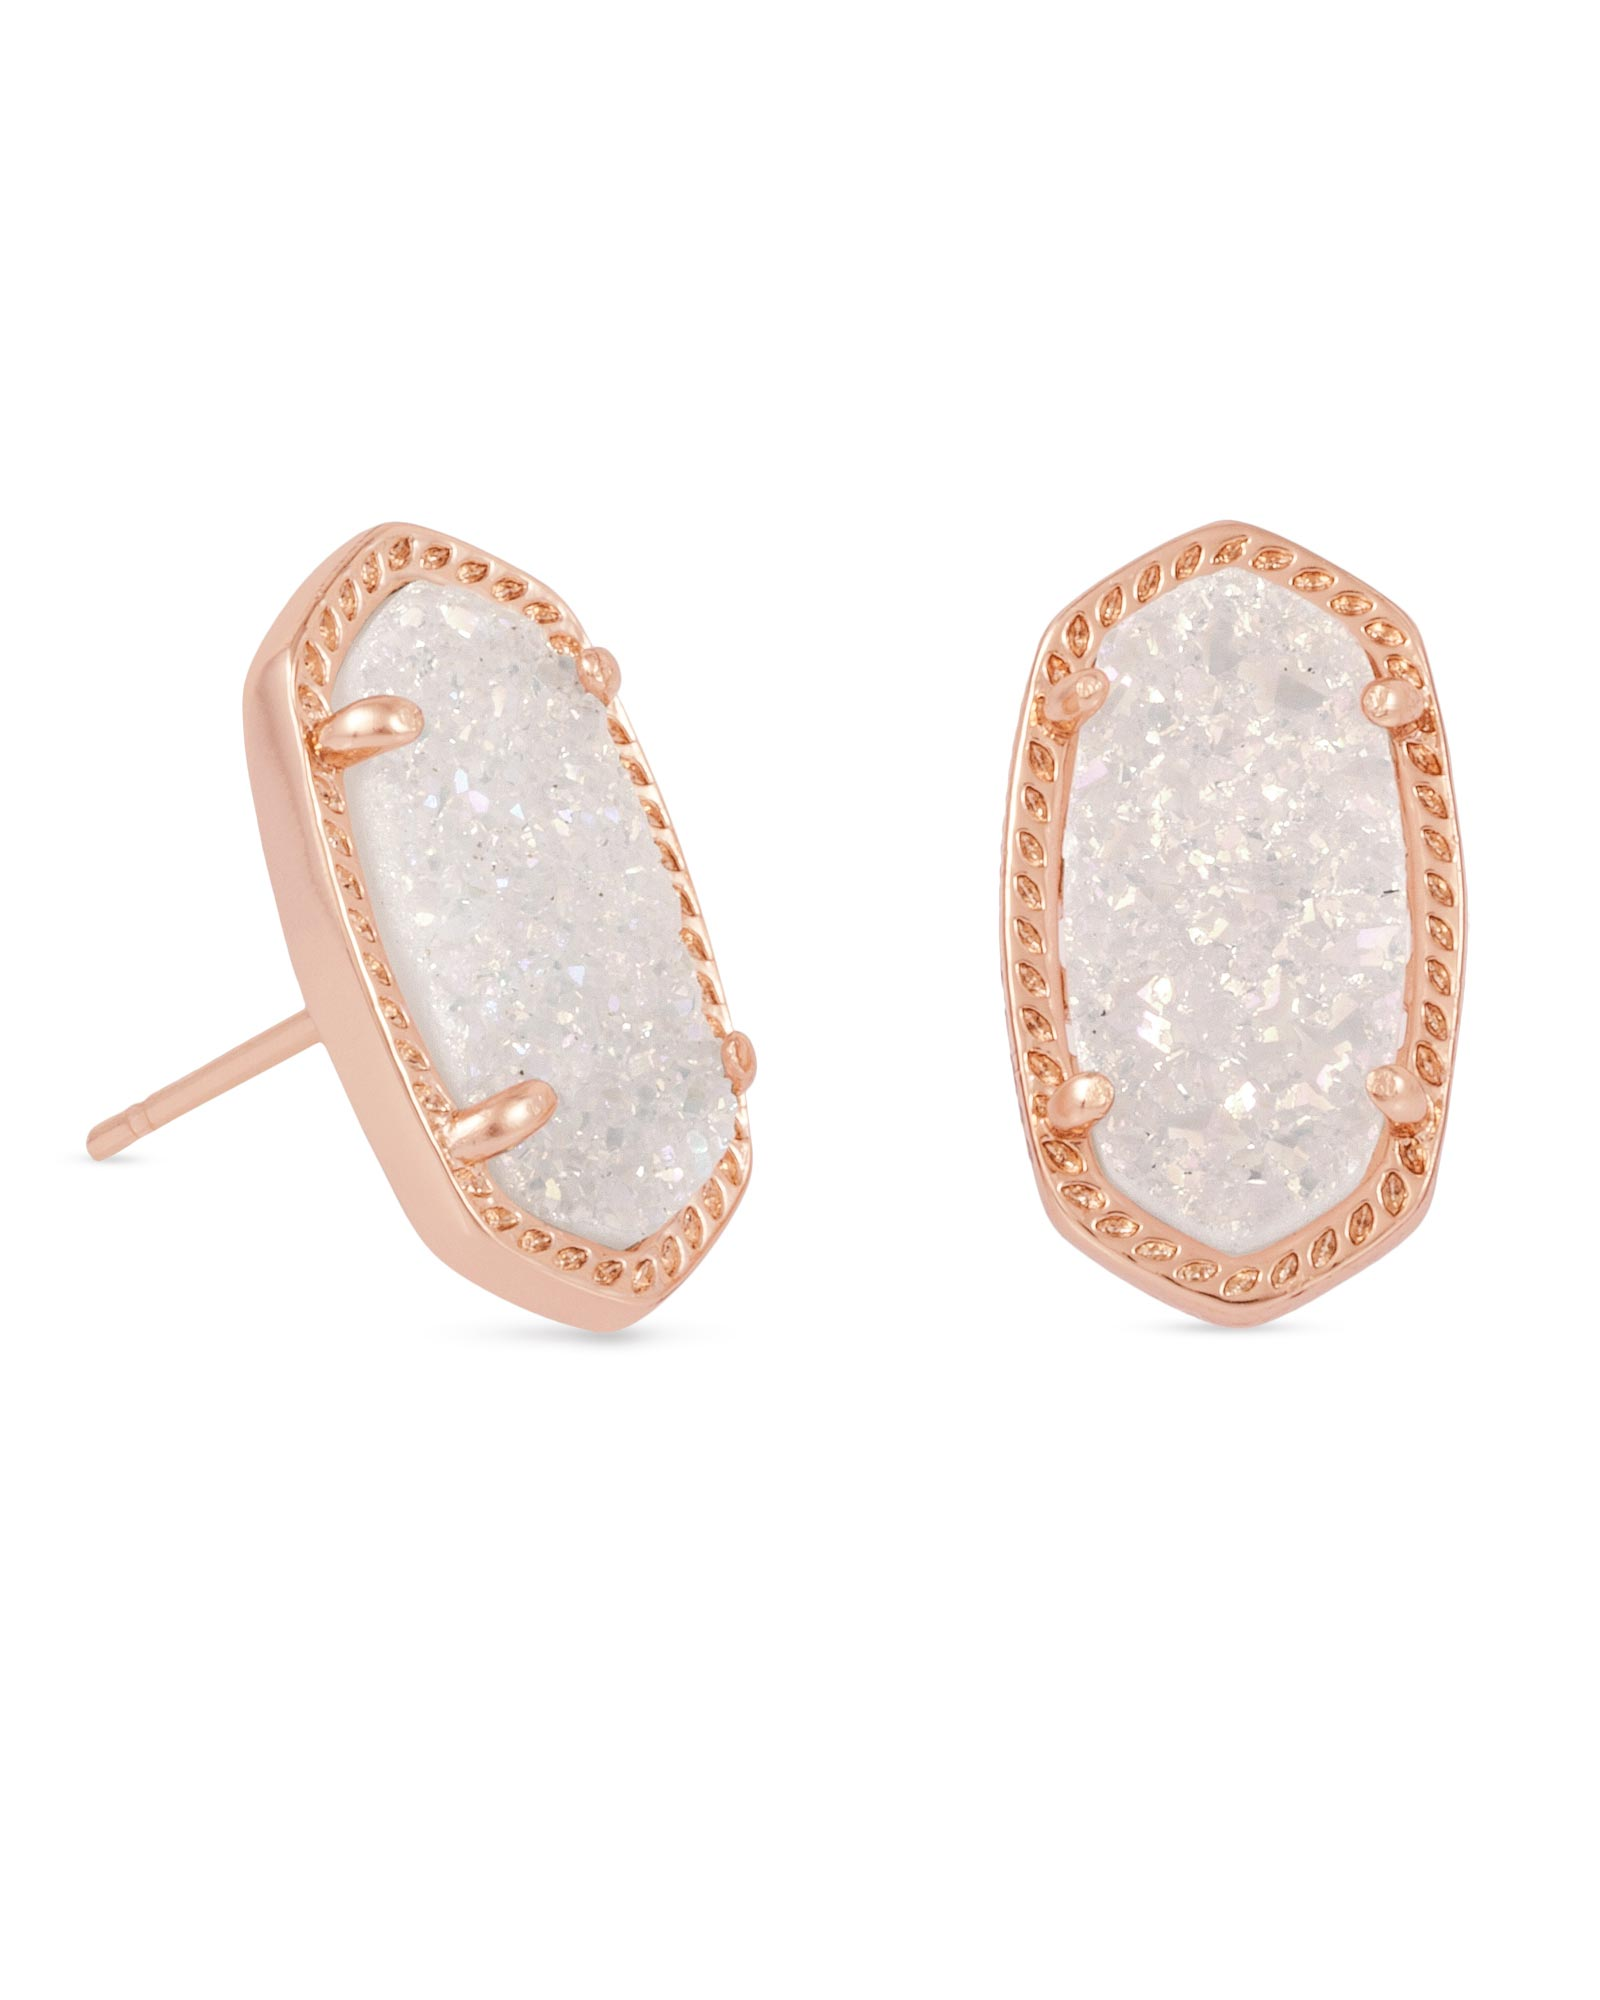 Ellie Drusy Stud Earrings in Rose Gold Kendra Scott